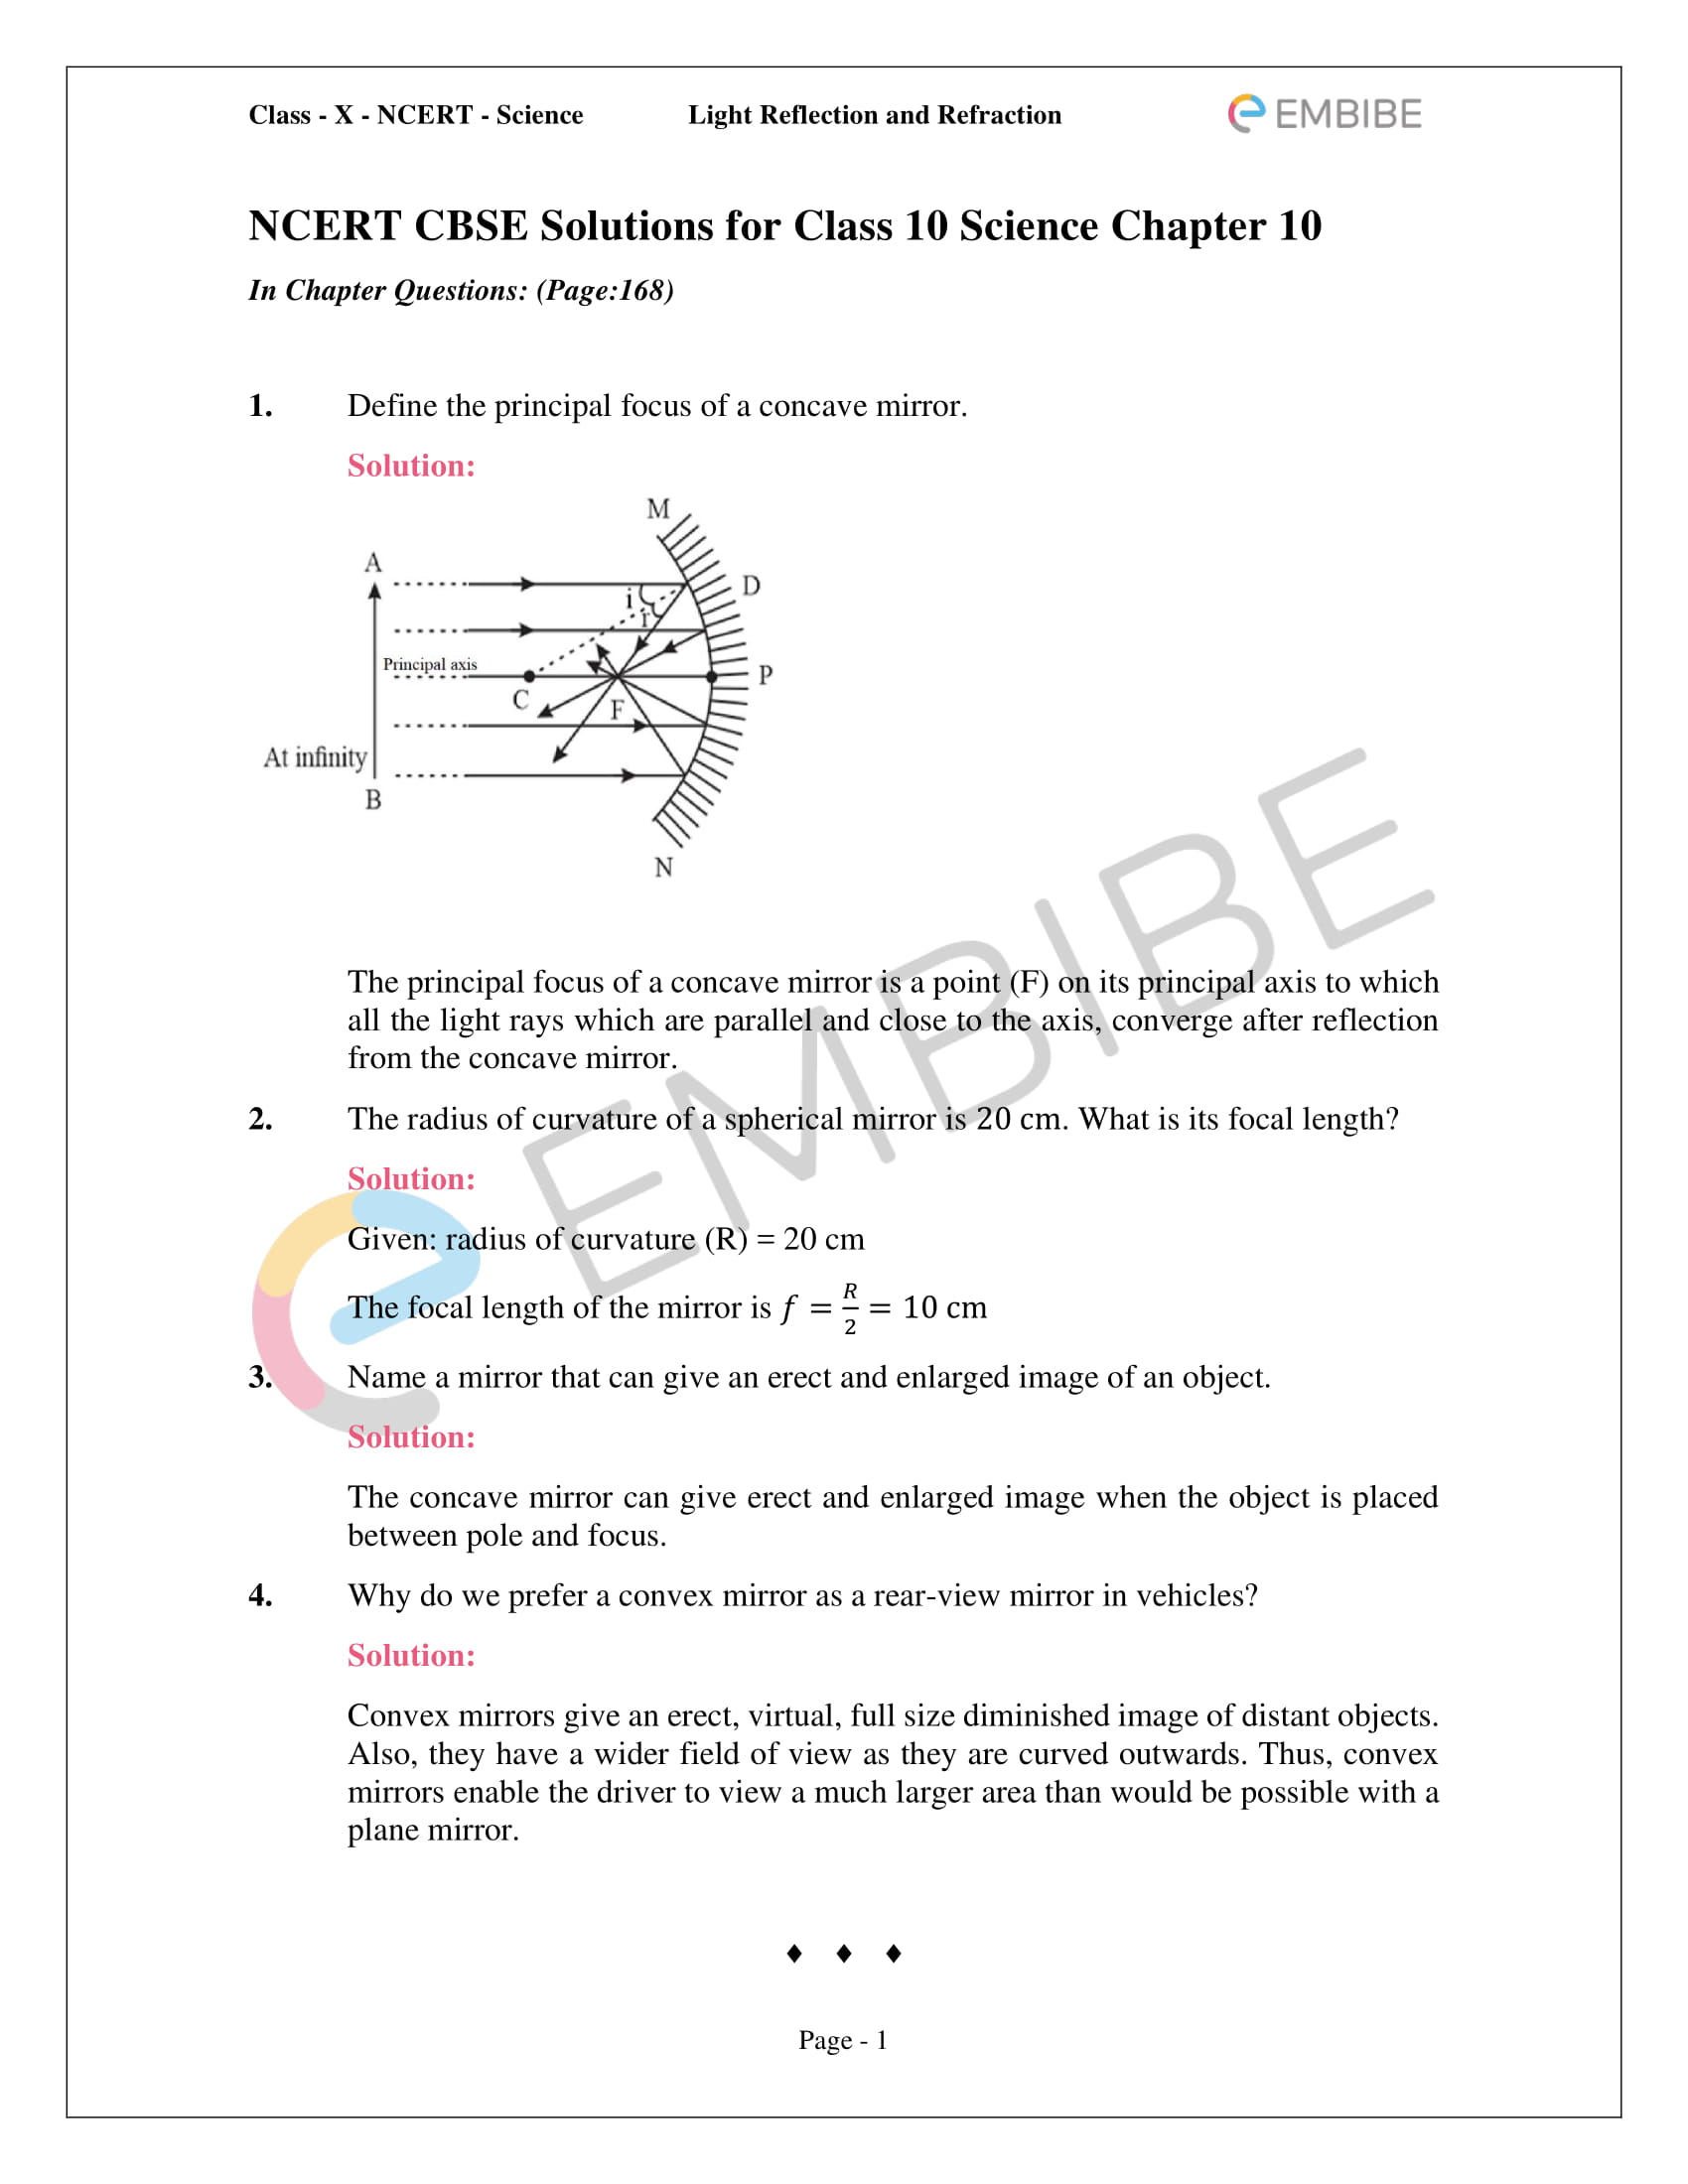 CBSE NCERT Solutions For Class 10 Science Chapter 10 - Light Reflection and Refraction - 1